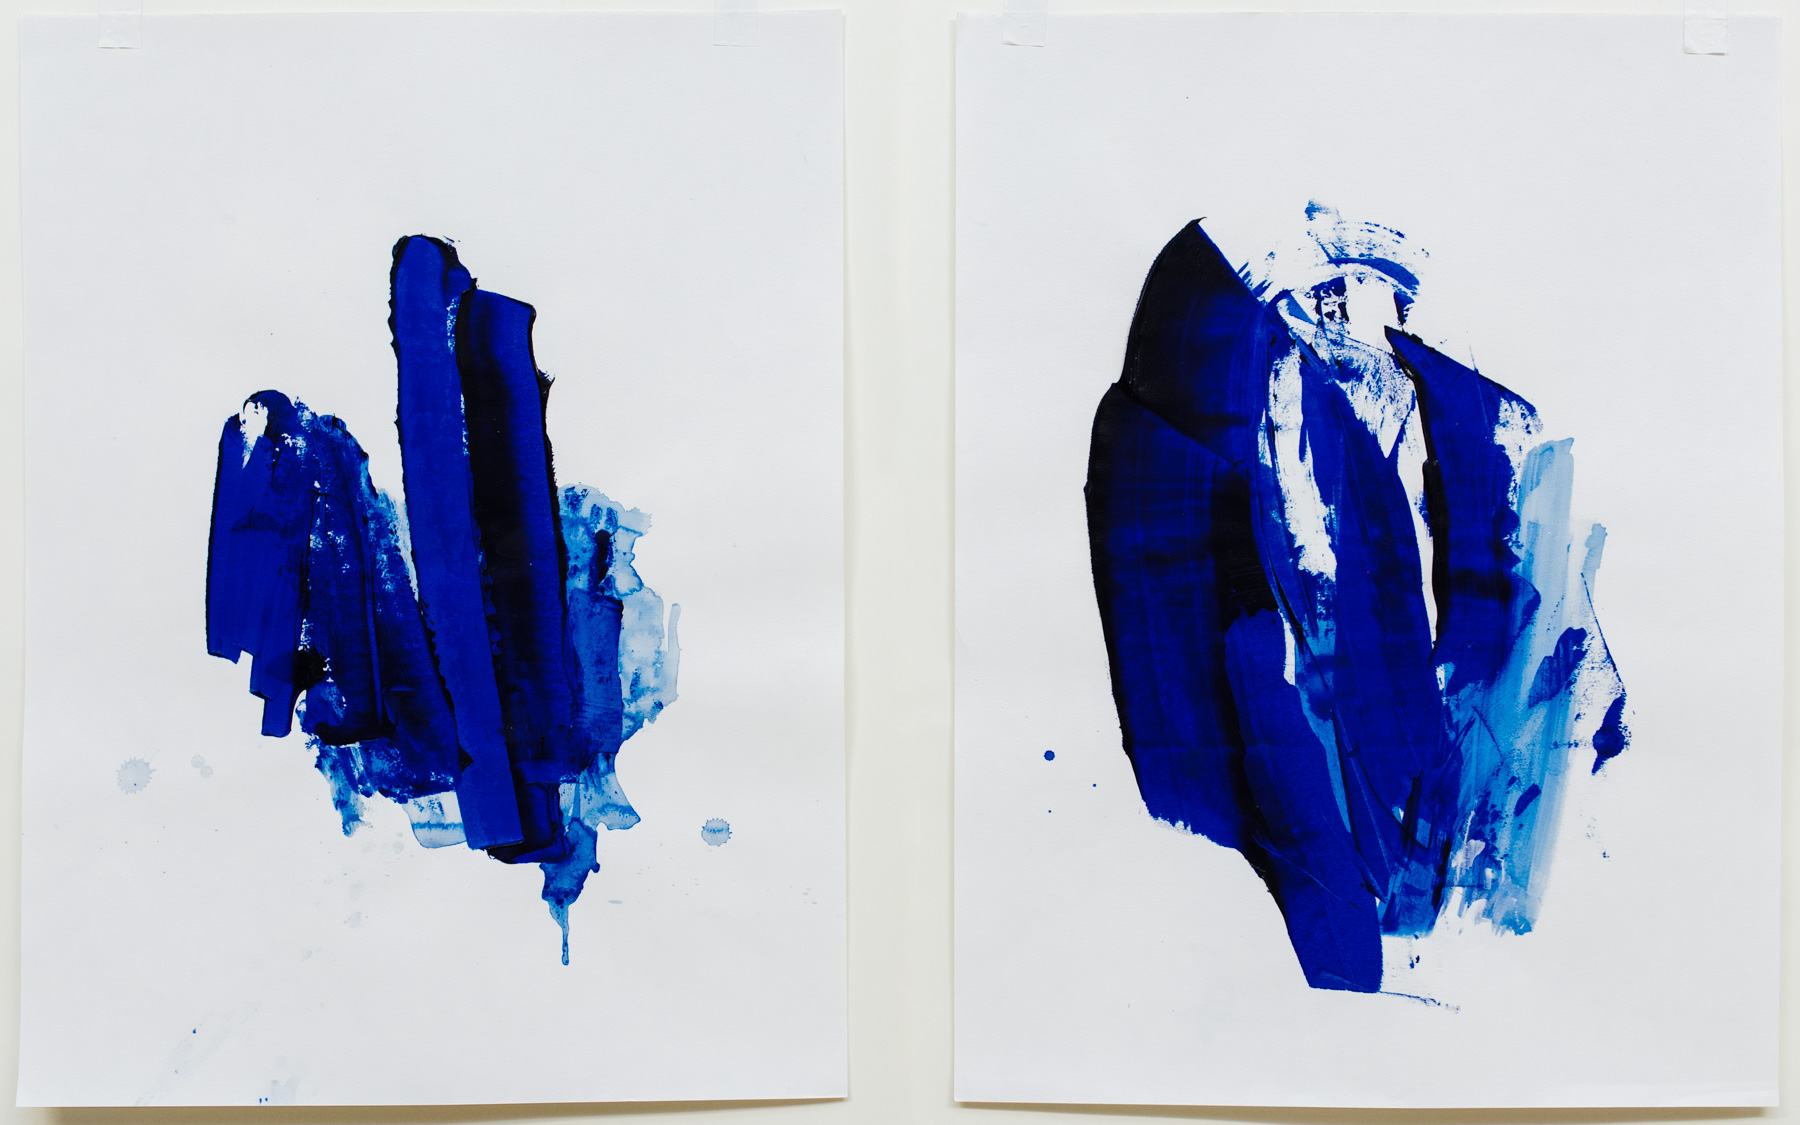 """Pushing Through #5-8 , 18""""x24"""" each, acrylic on paper, 2018, available (#5&6 not pictured)"""